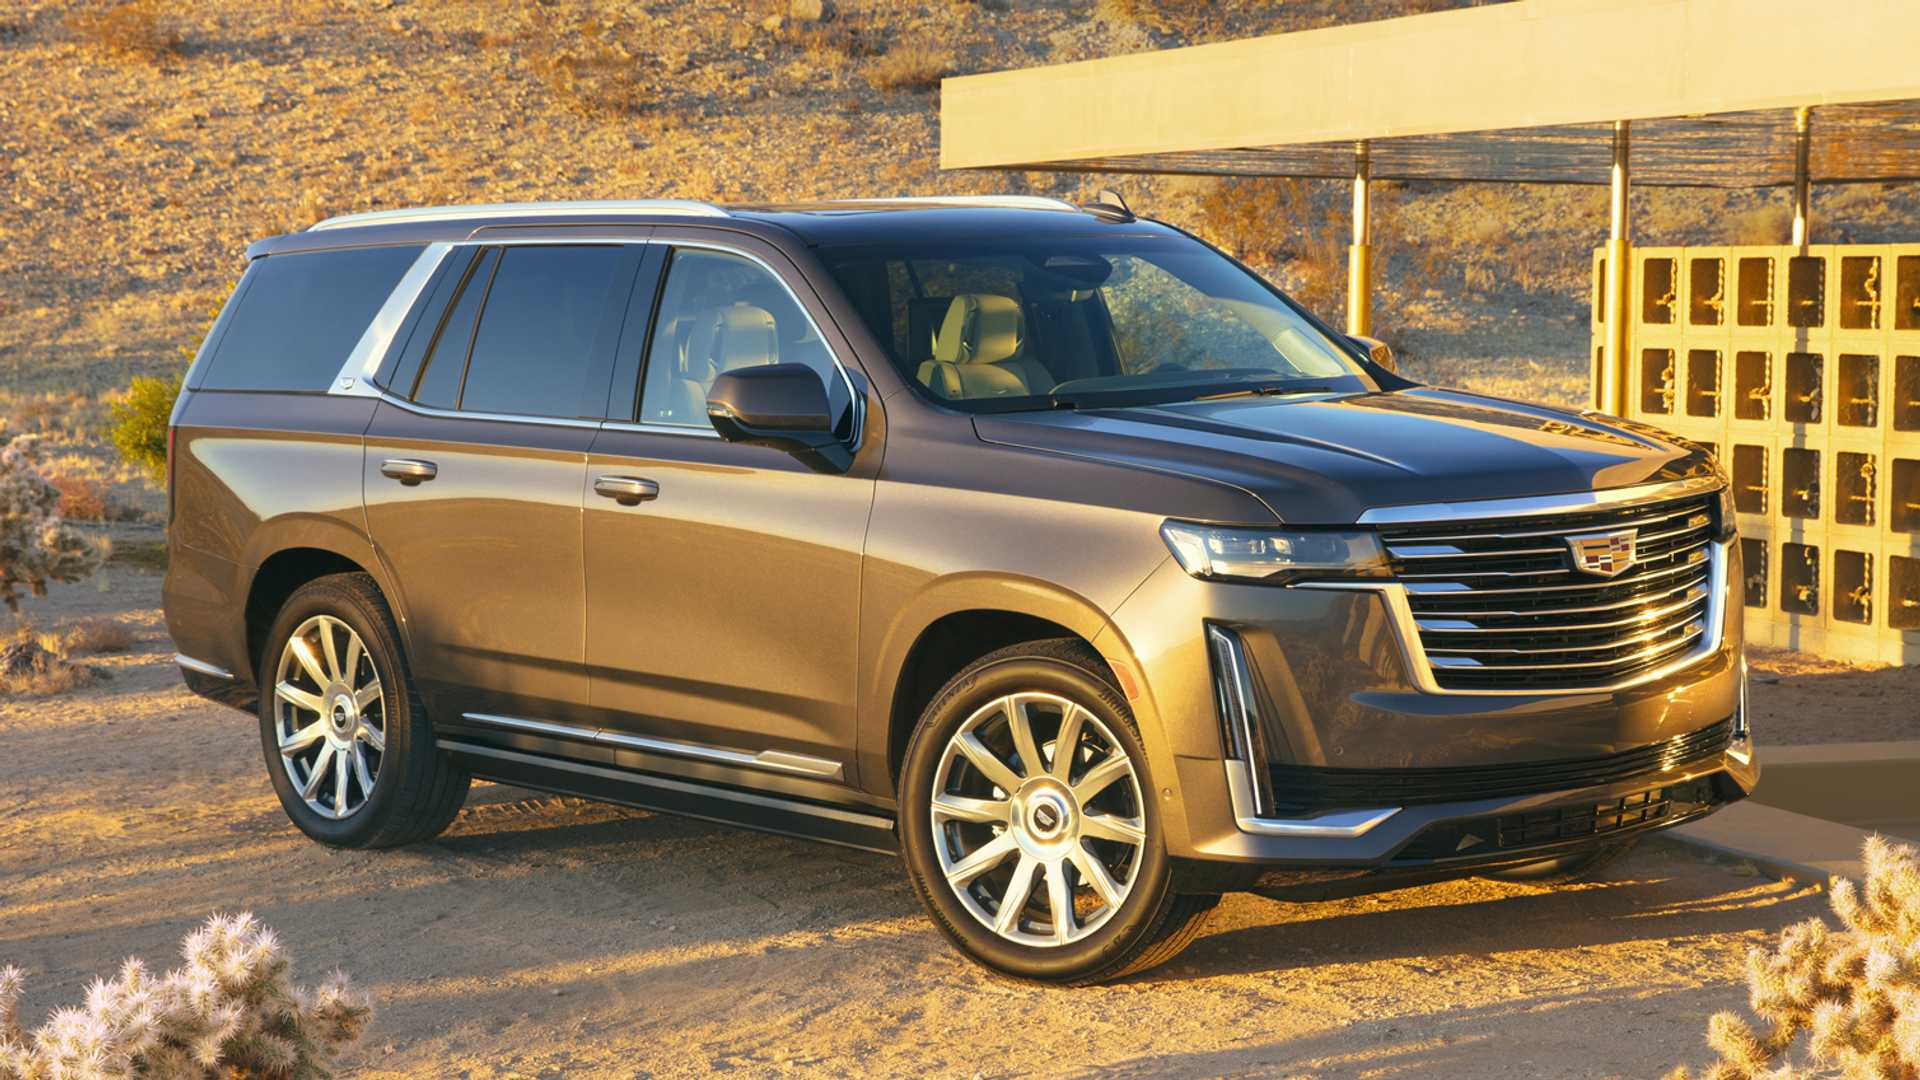 2021 Cadillac Escalade Lead